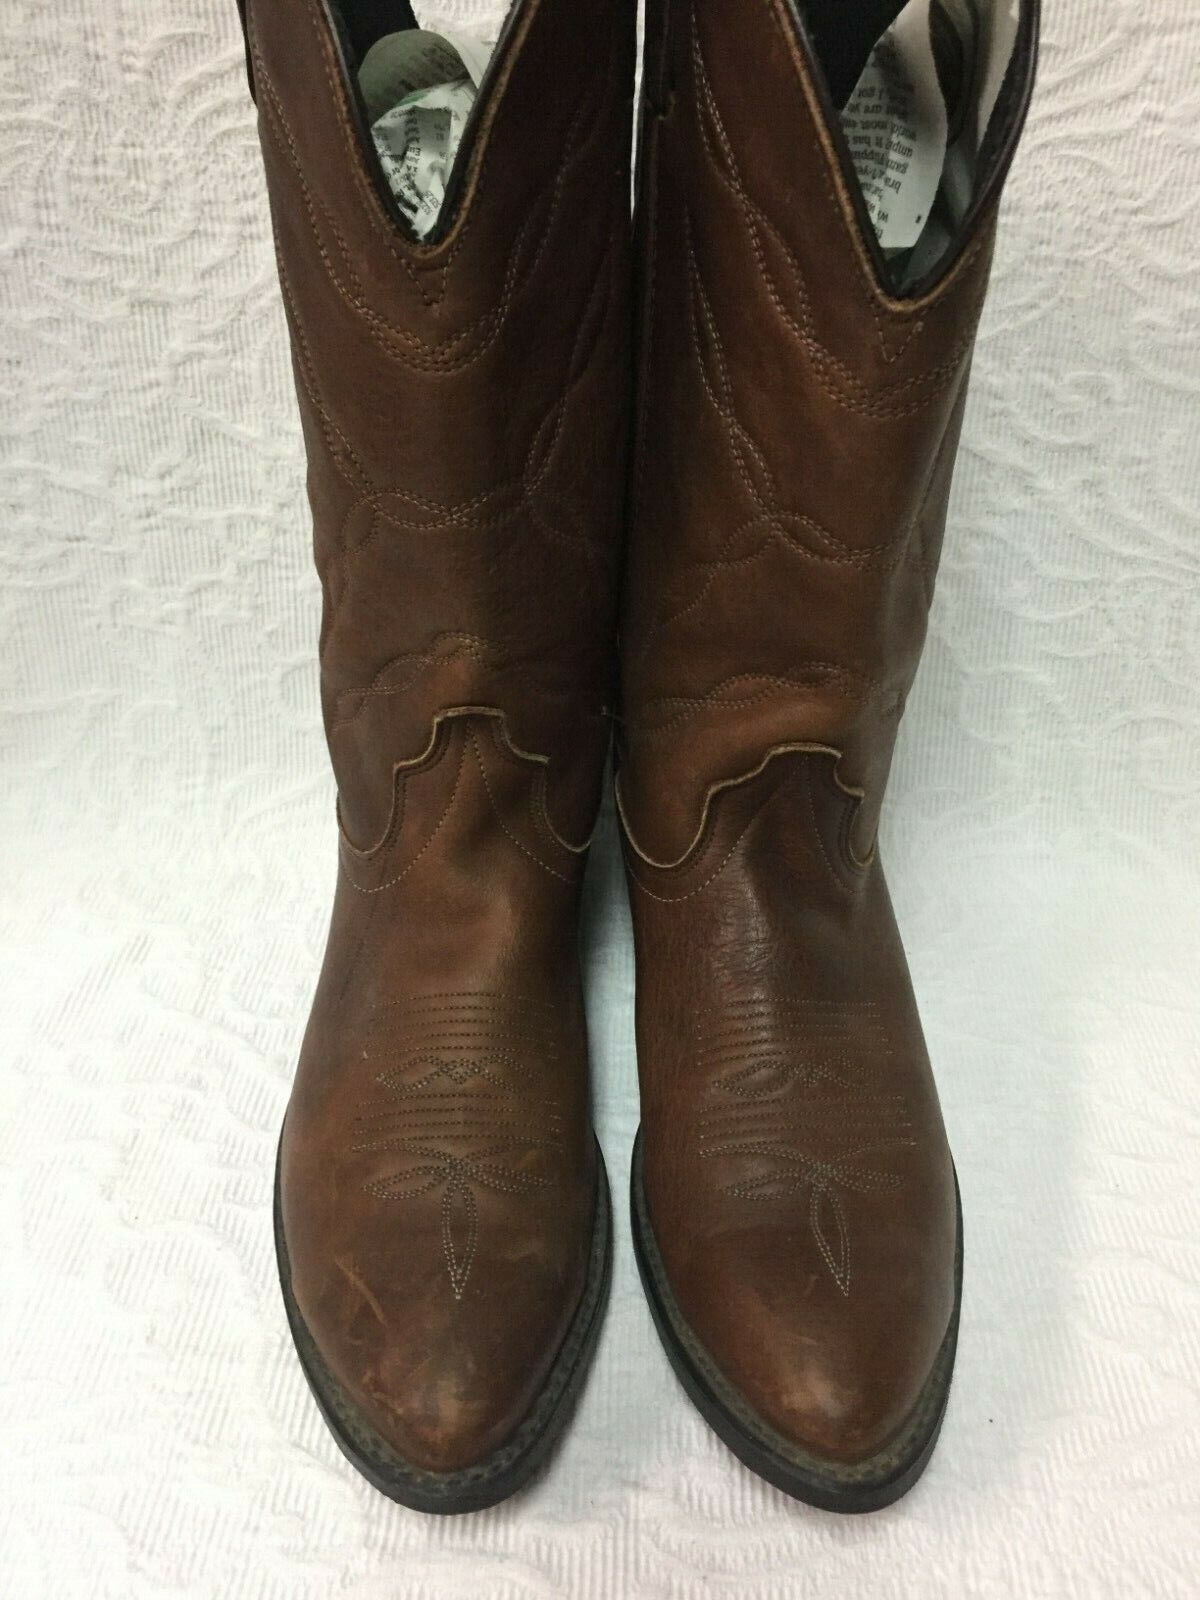 Loredo Oil Resistant Pull On Boots - Men's 8.5 EE - Brown - Leather - Pre-Owned